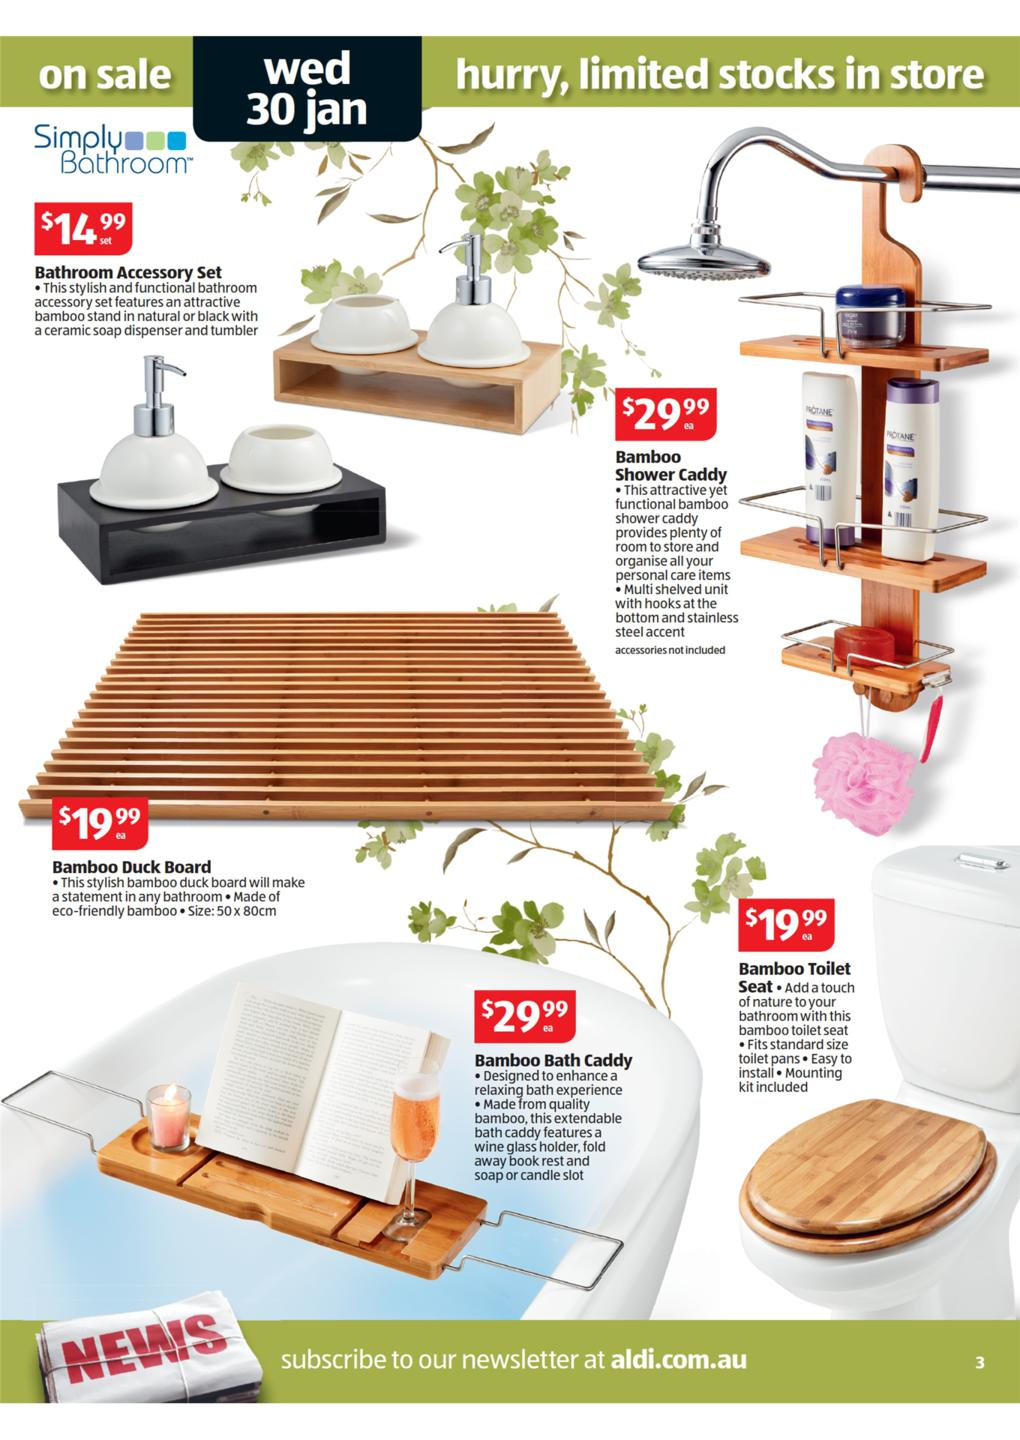 ALDI Catalogue - Special Buys Wk 5 February 2013 Page 3